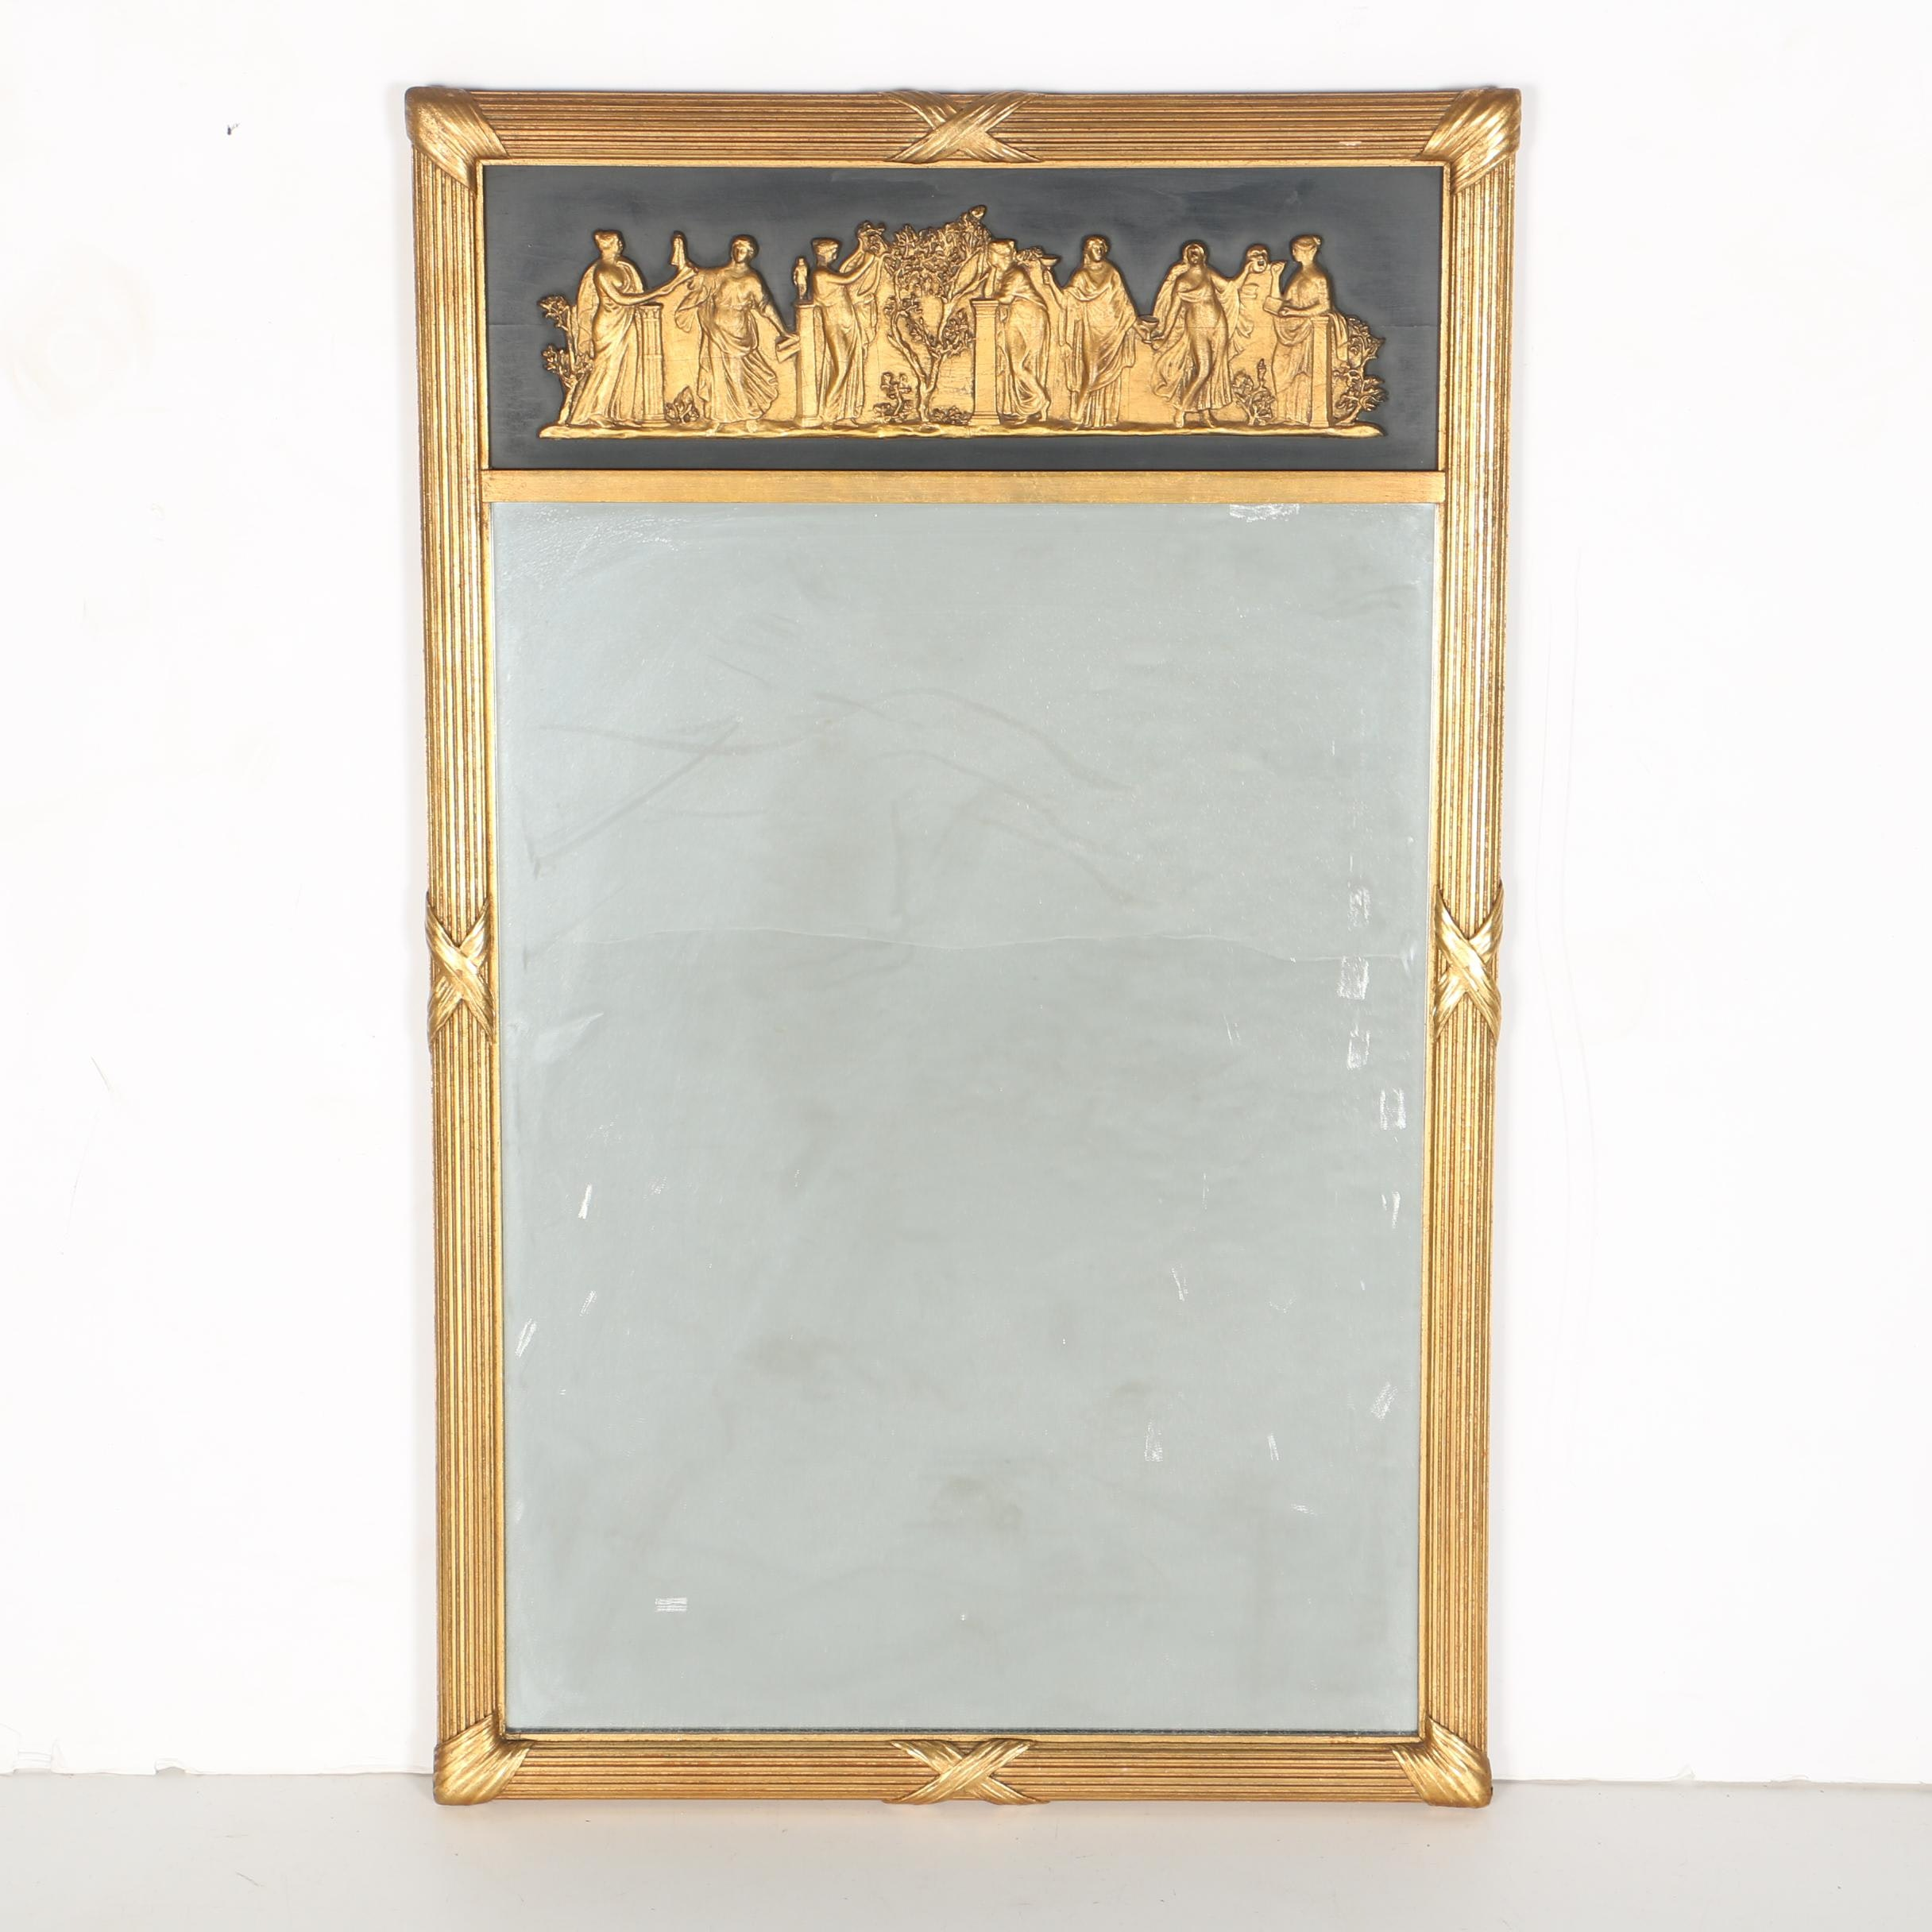 Gilt Framed Mirror with Classical Grecian Figures Relief